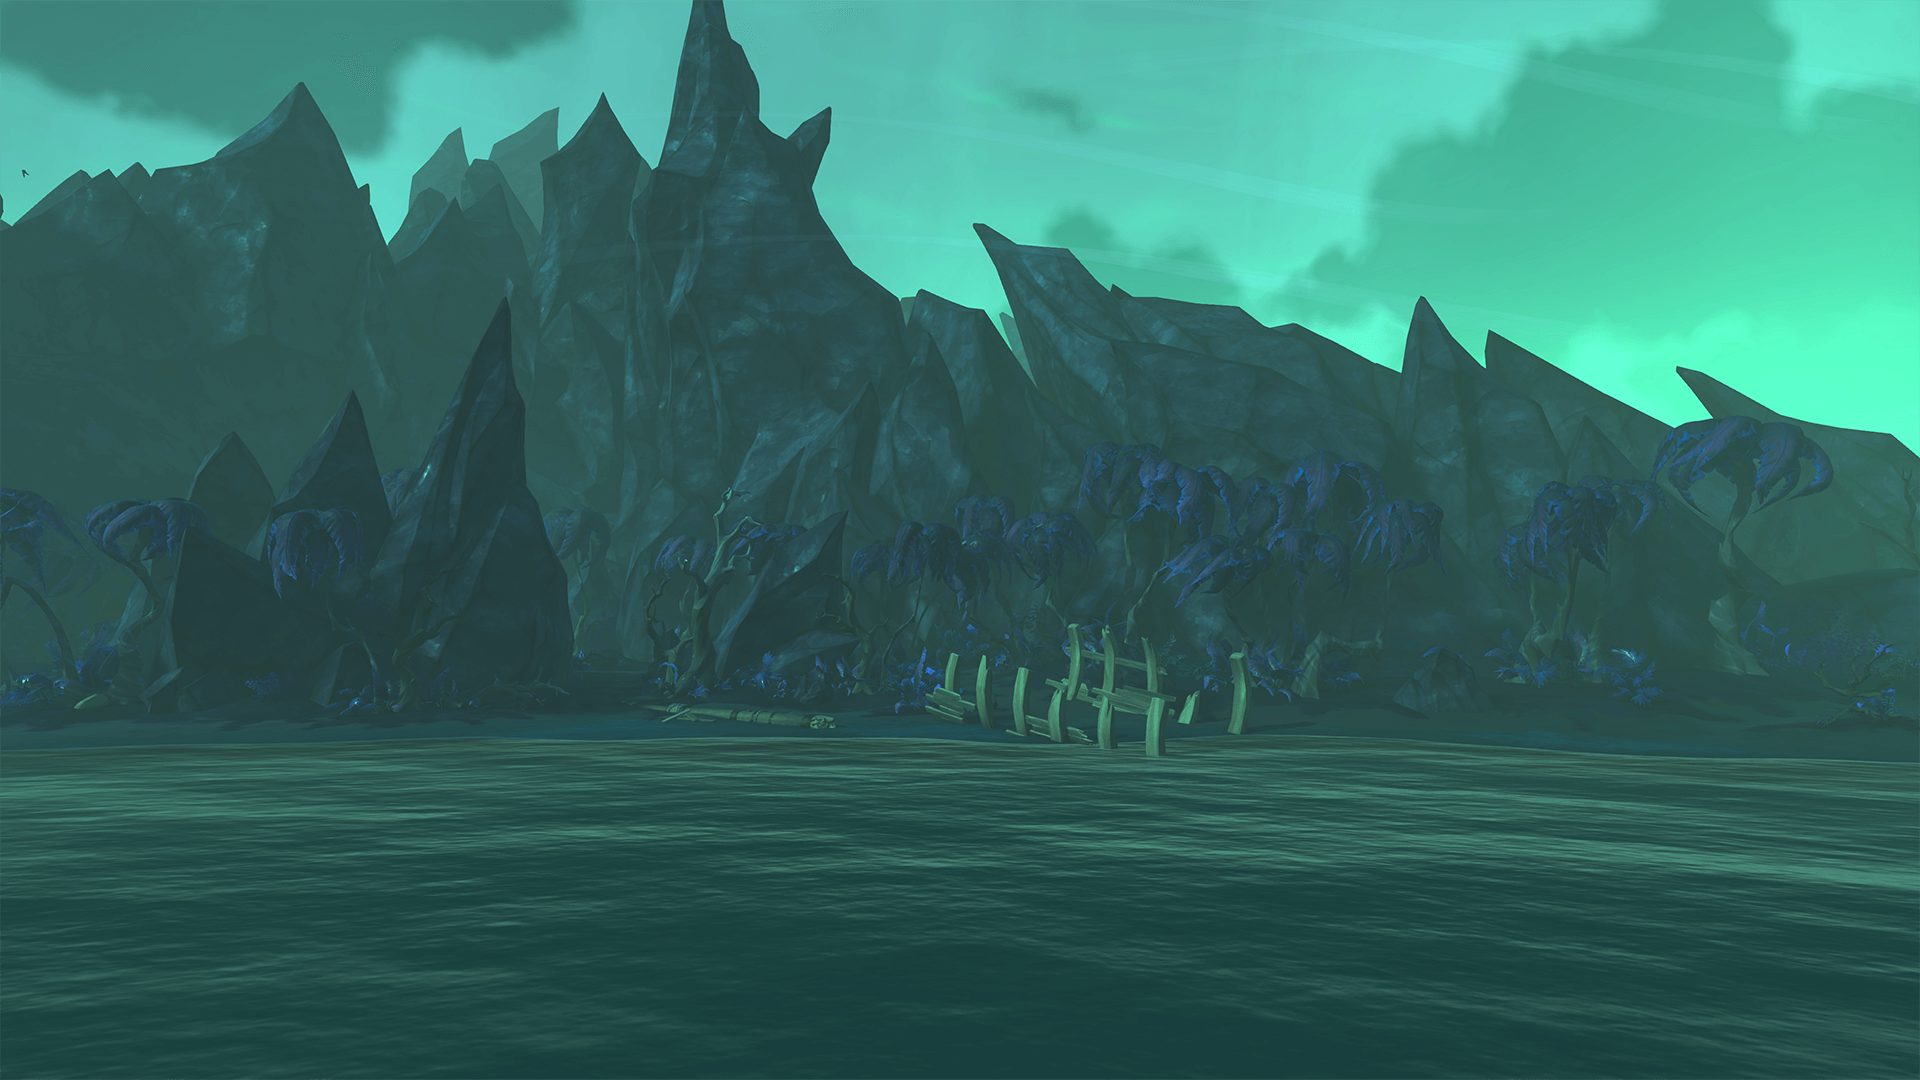 Approaching the Island on Strange Shores